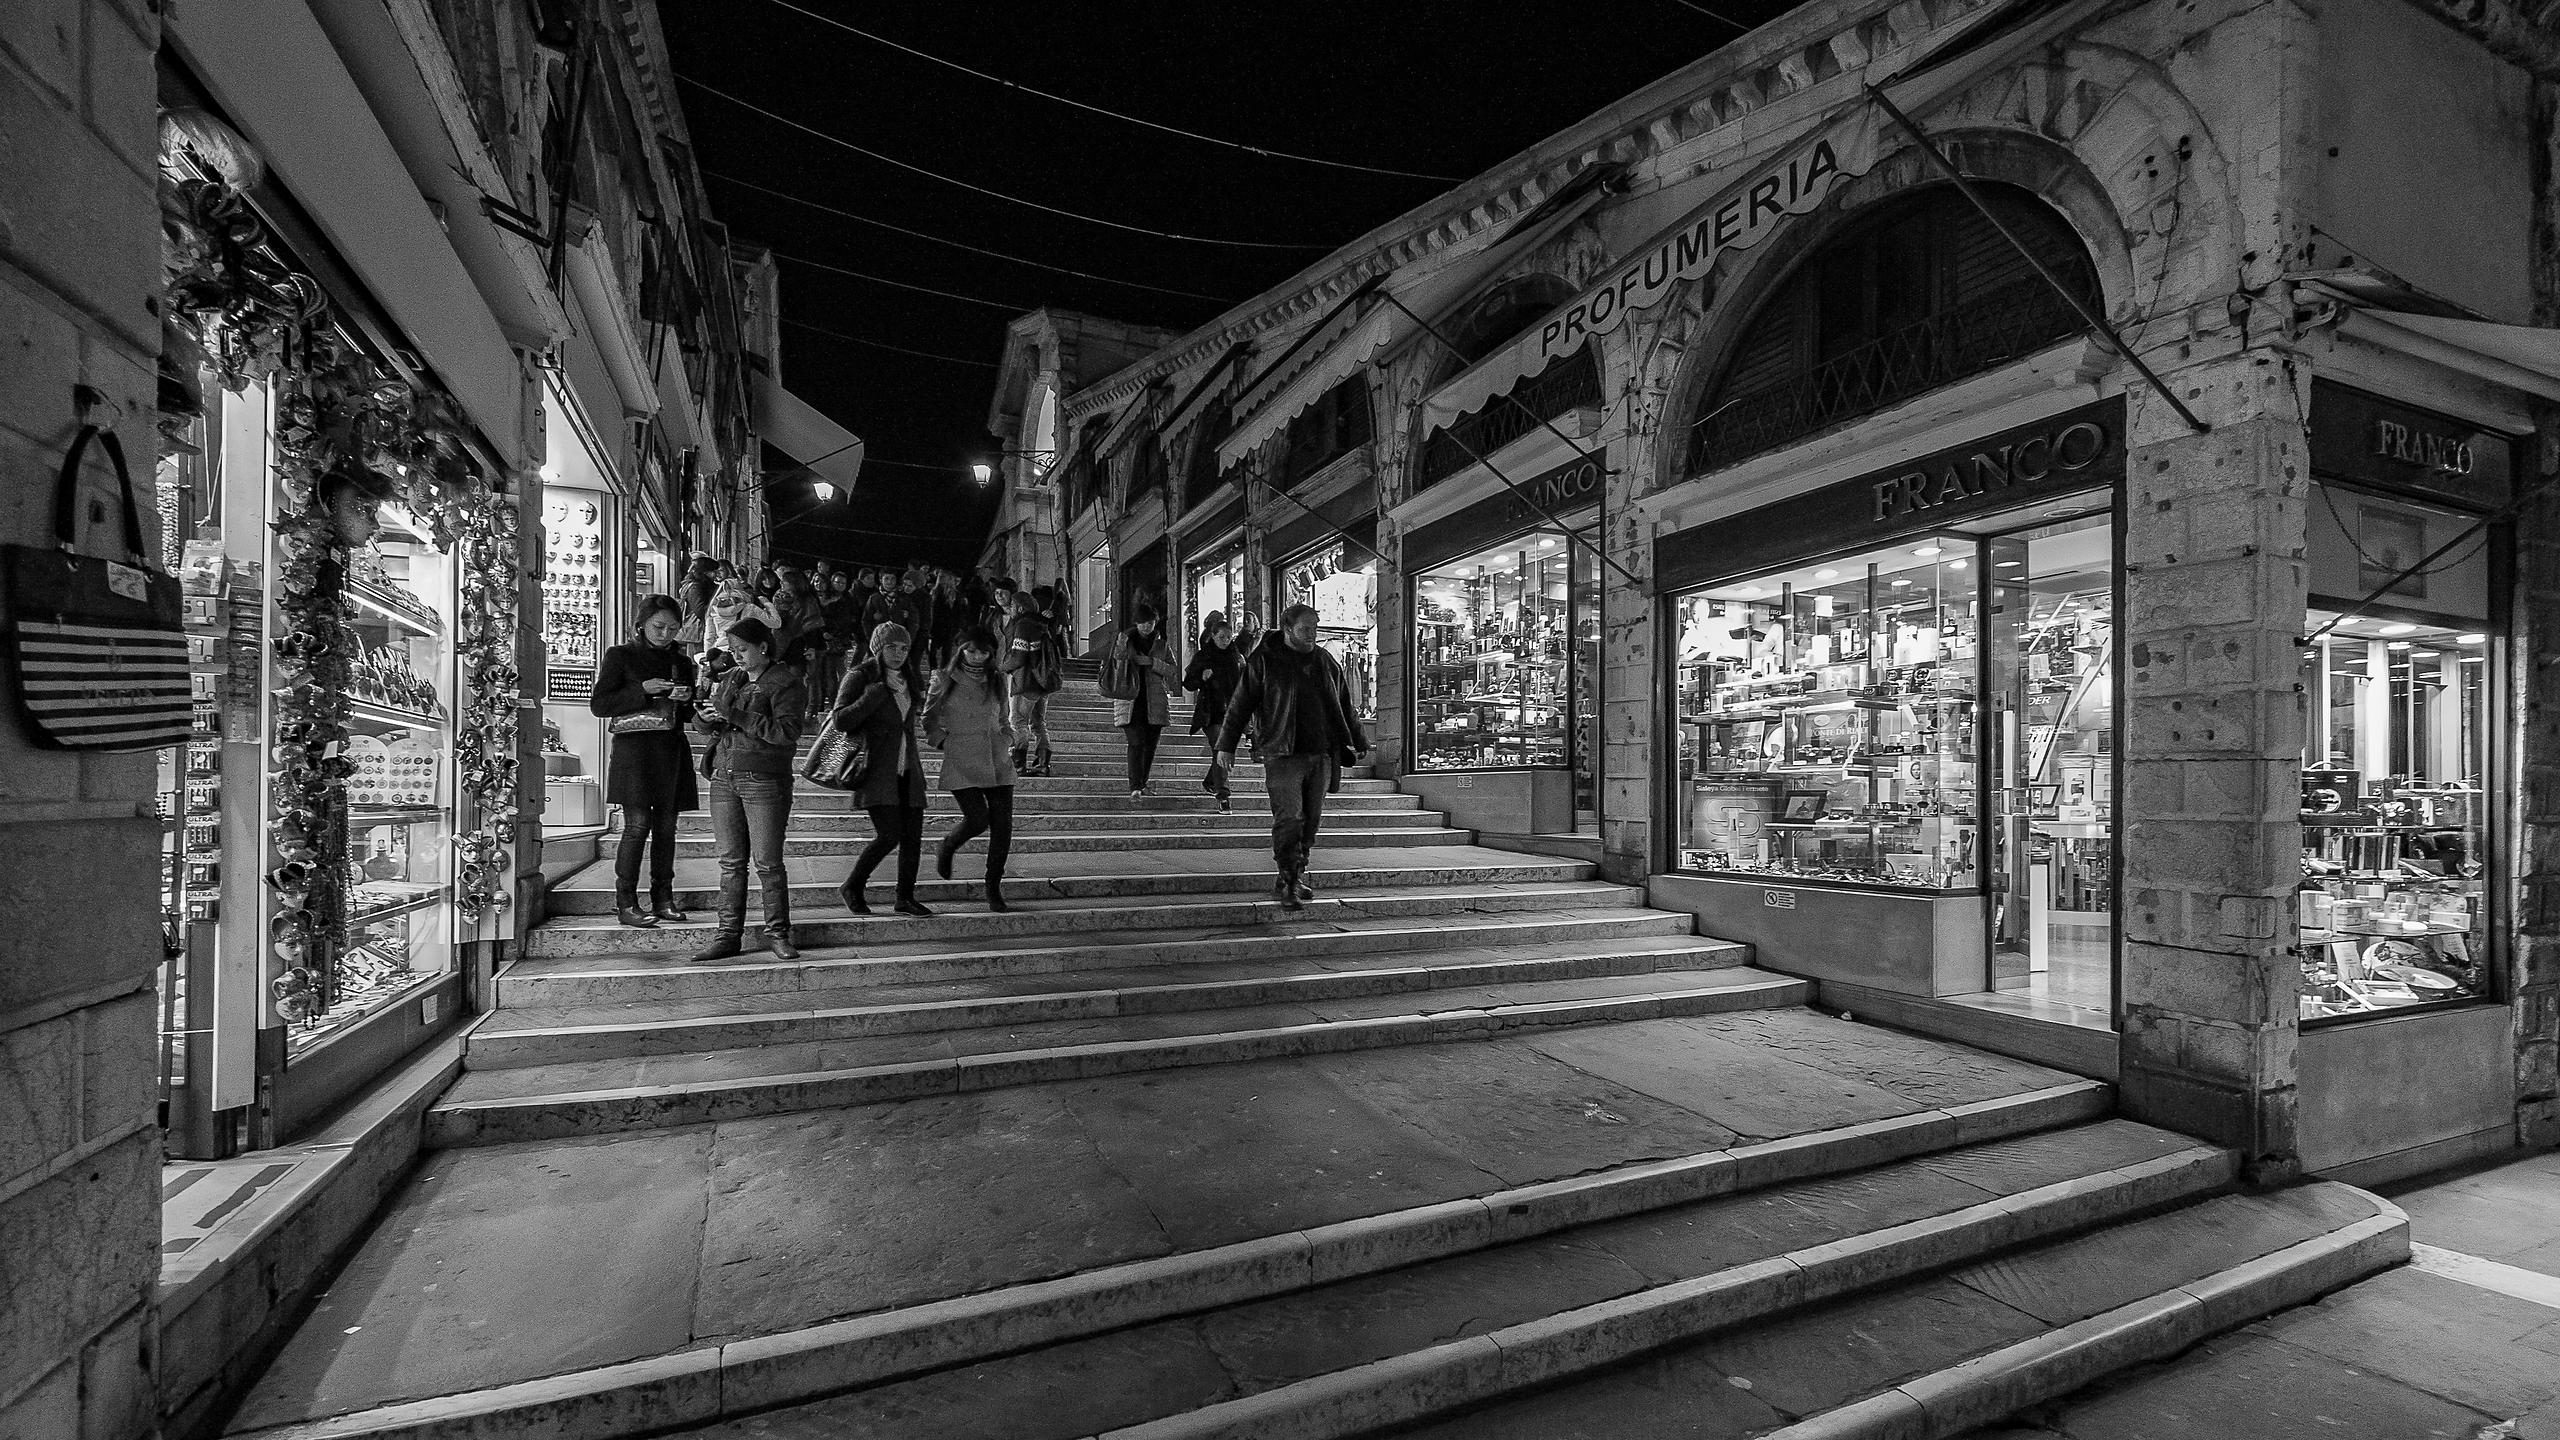 Tourists walking at night on the Rialto Bridge, Venice - black & white